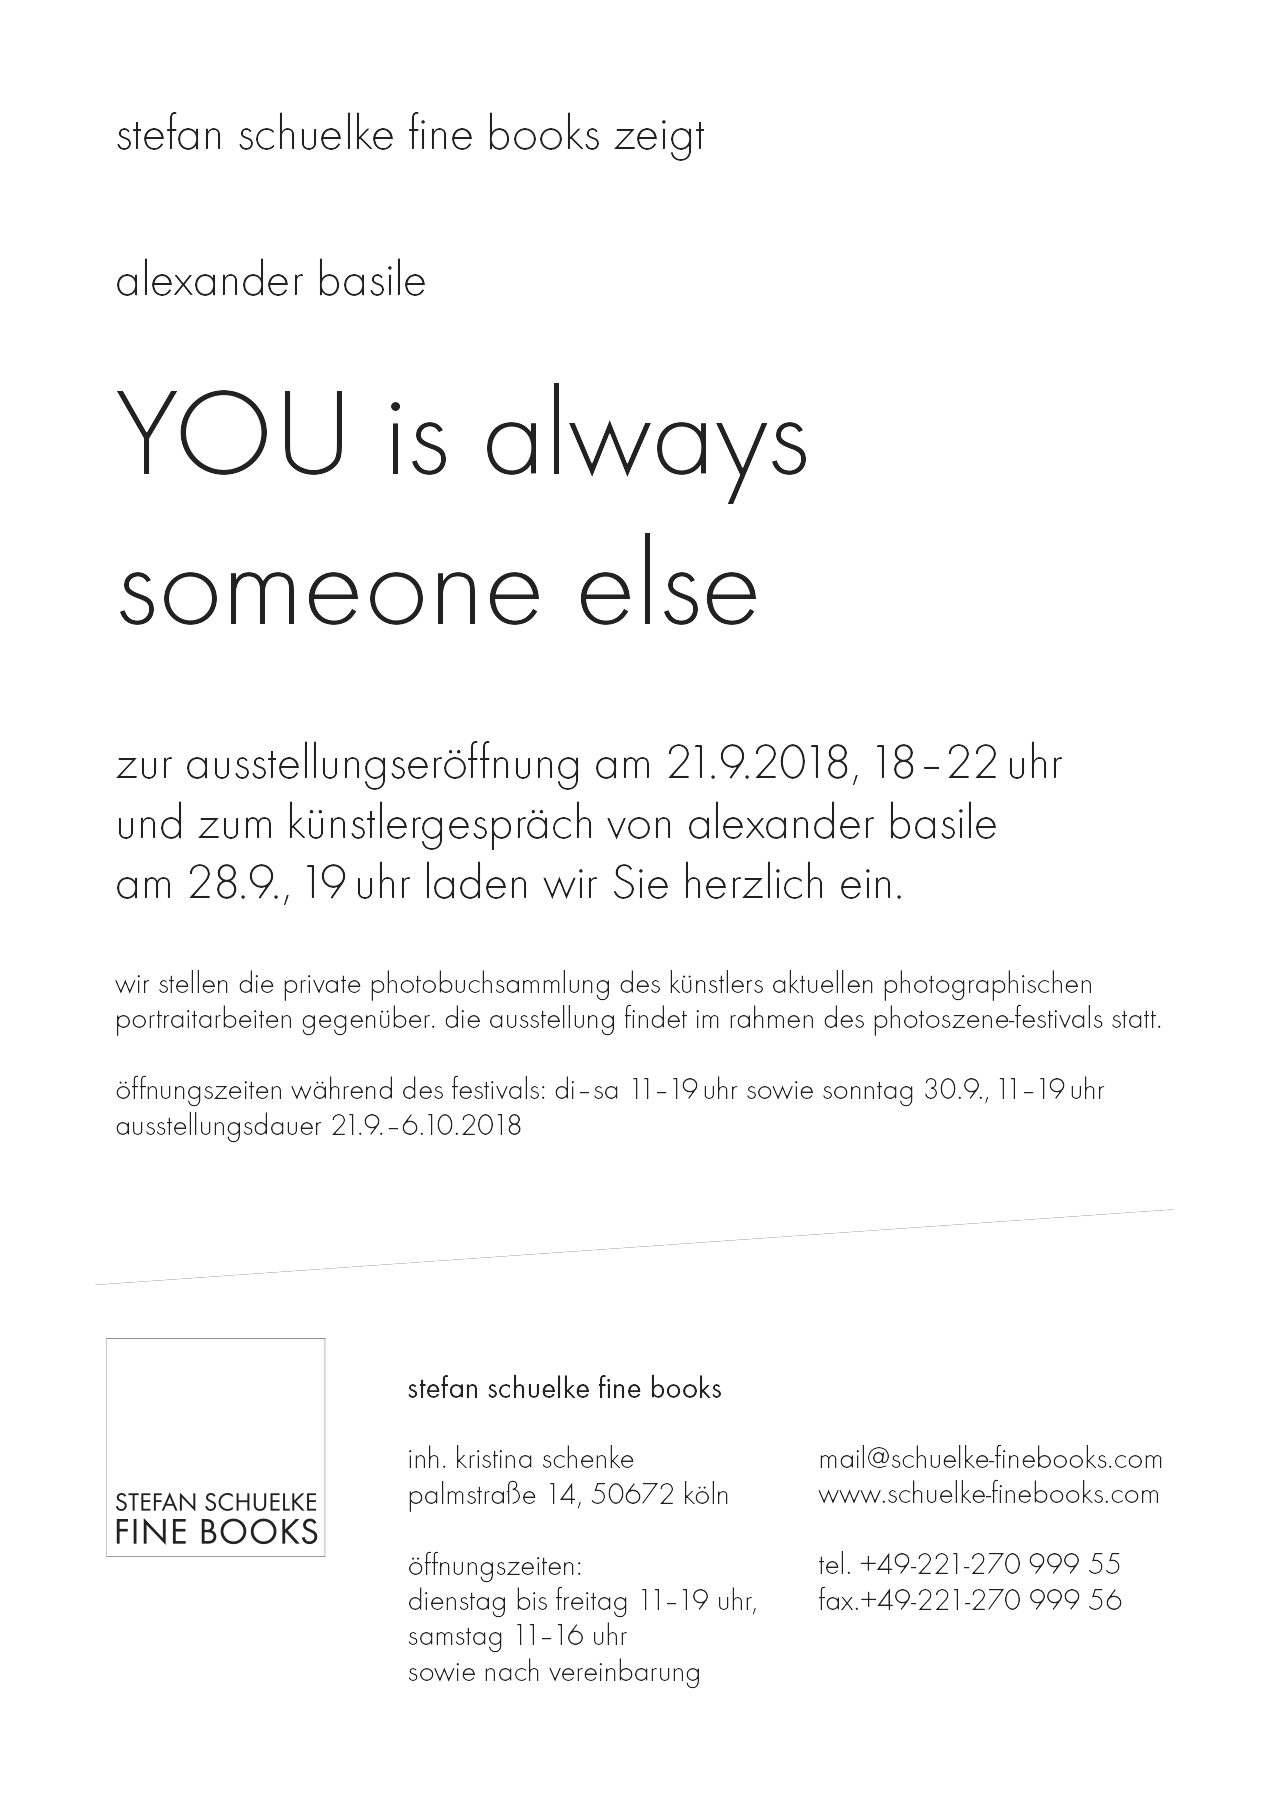 Alexander Basile - YOU is always someone else - exhibition - Stefan Schuelke Fine Books